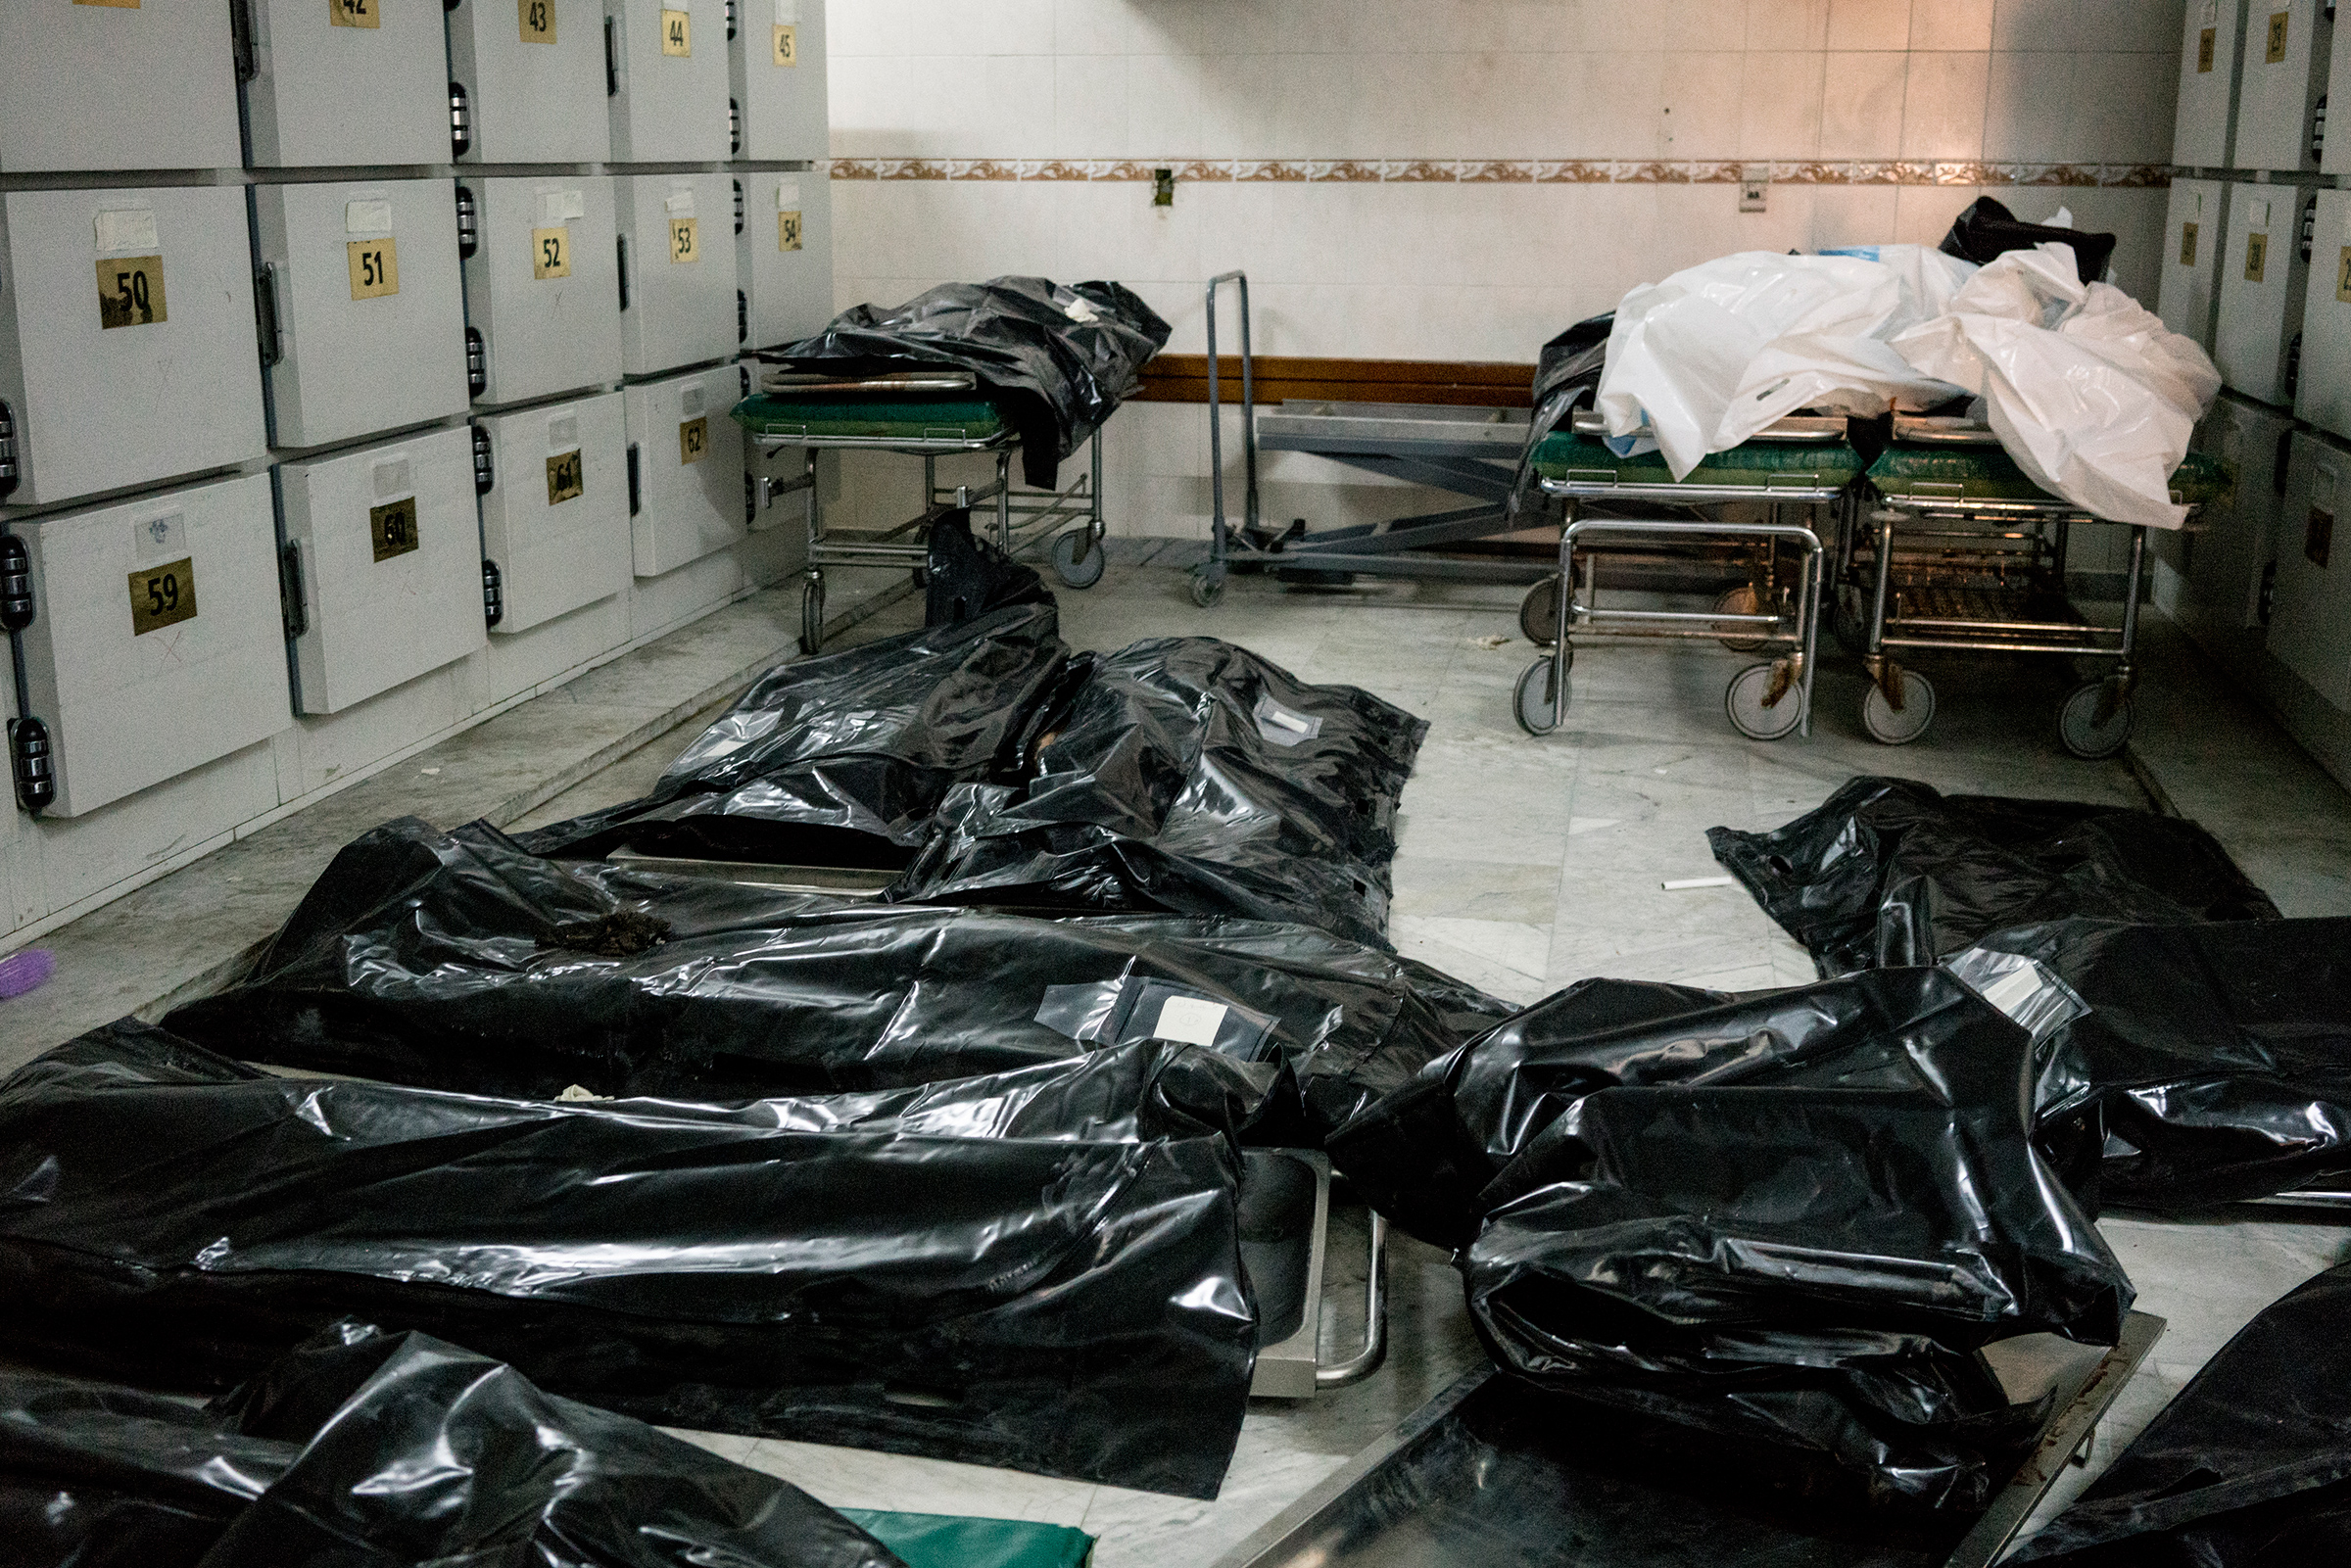 Bodies of migrants killed in the airstrike lay on the floor of the Tripoli Central Hospital morgue.